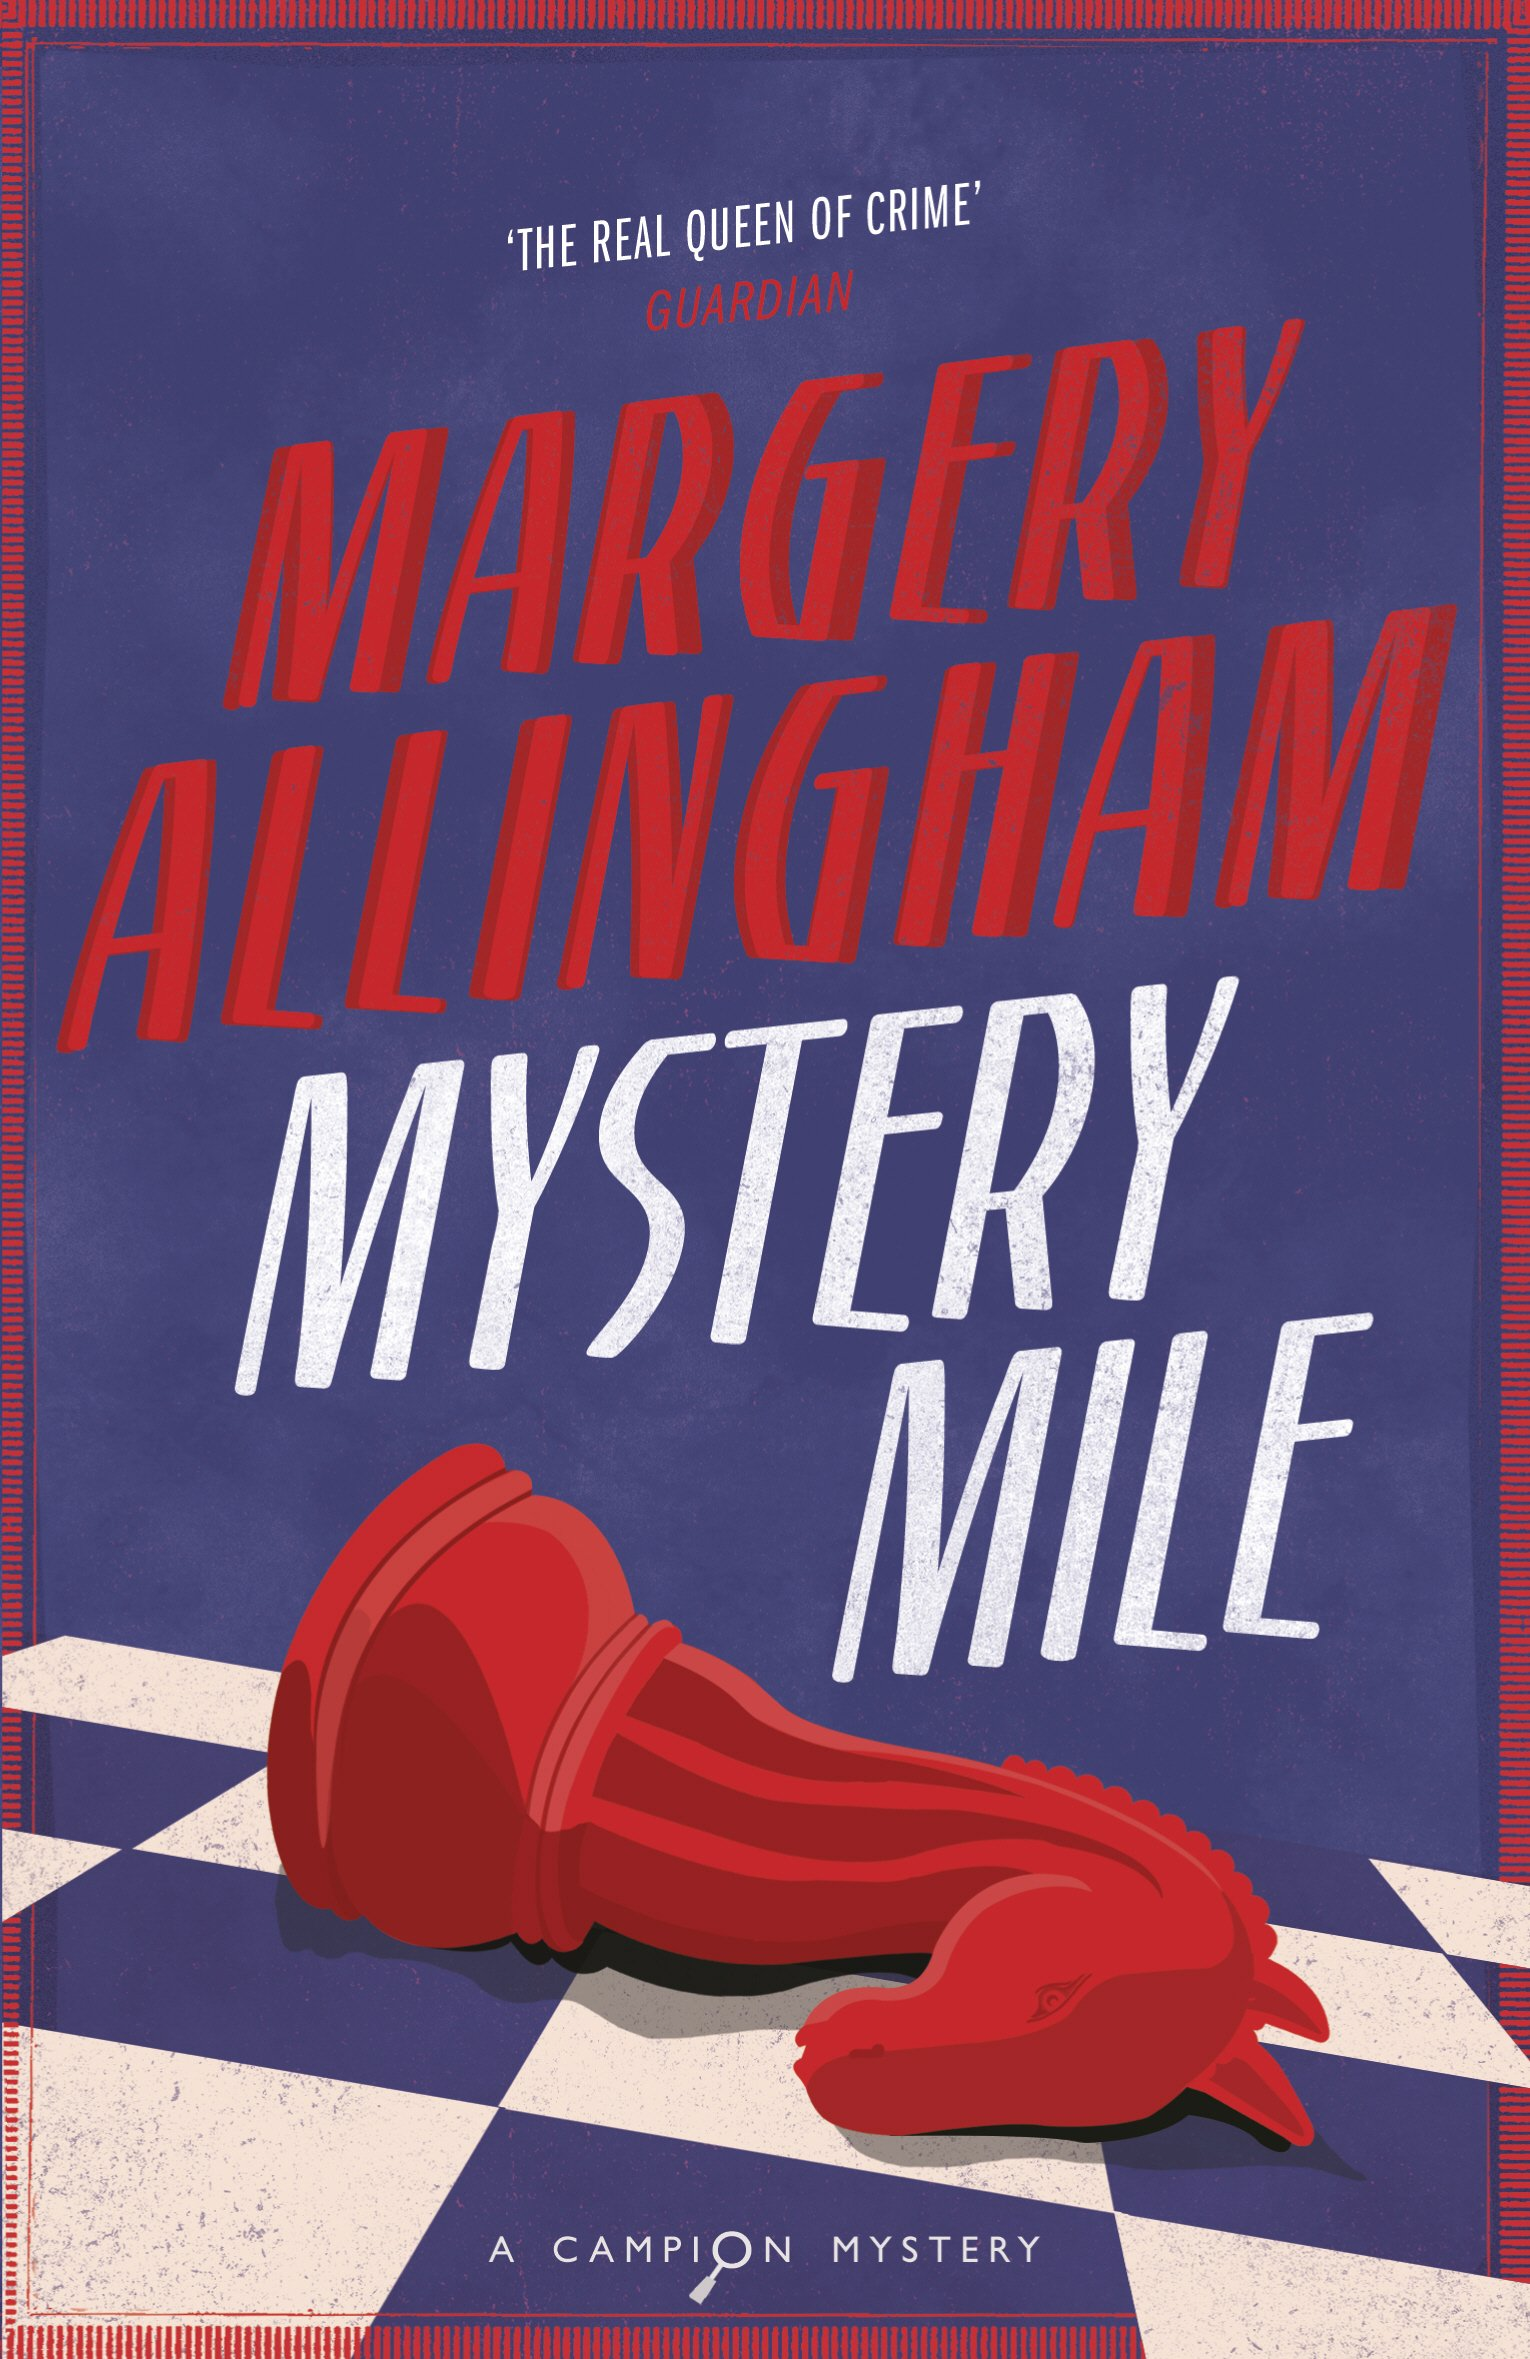 Amazon.com: Mystery Mile: A Campion Mystery (9780099474692): Allingham,  Margery: Books